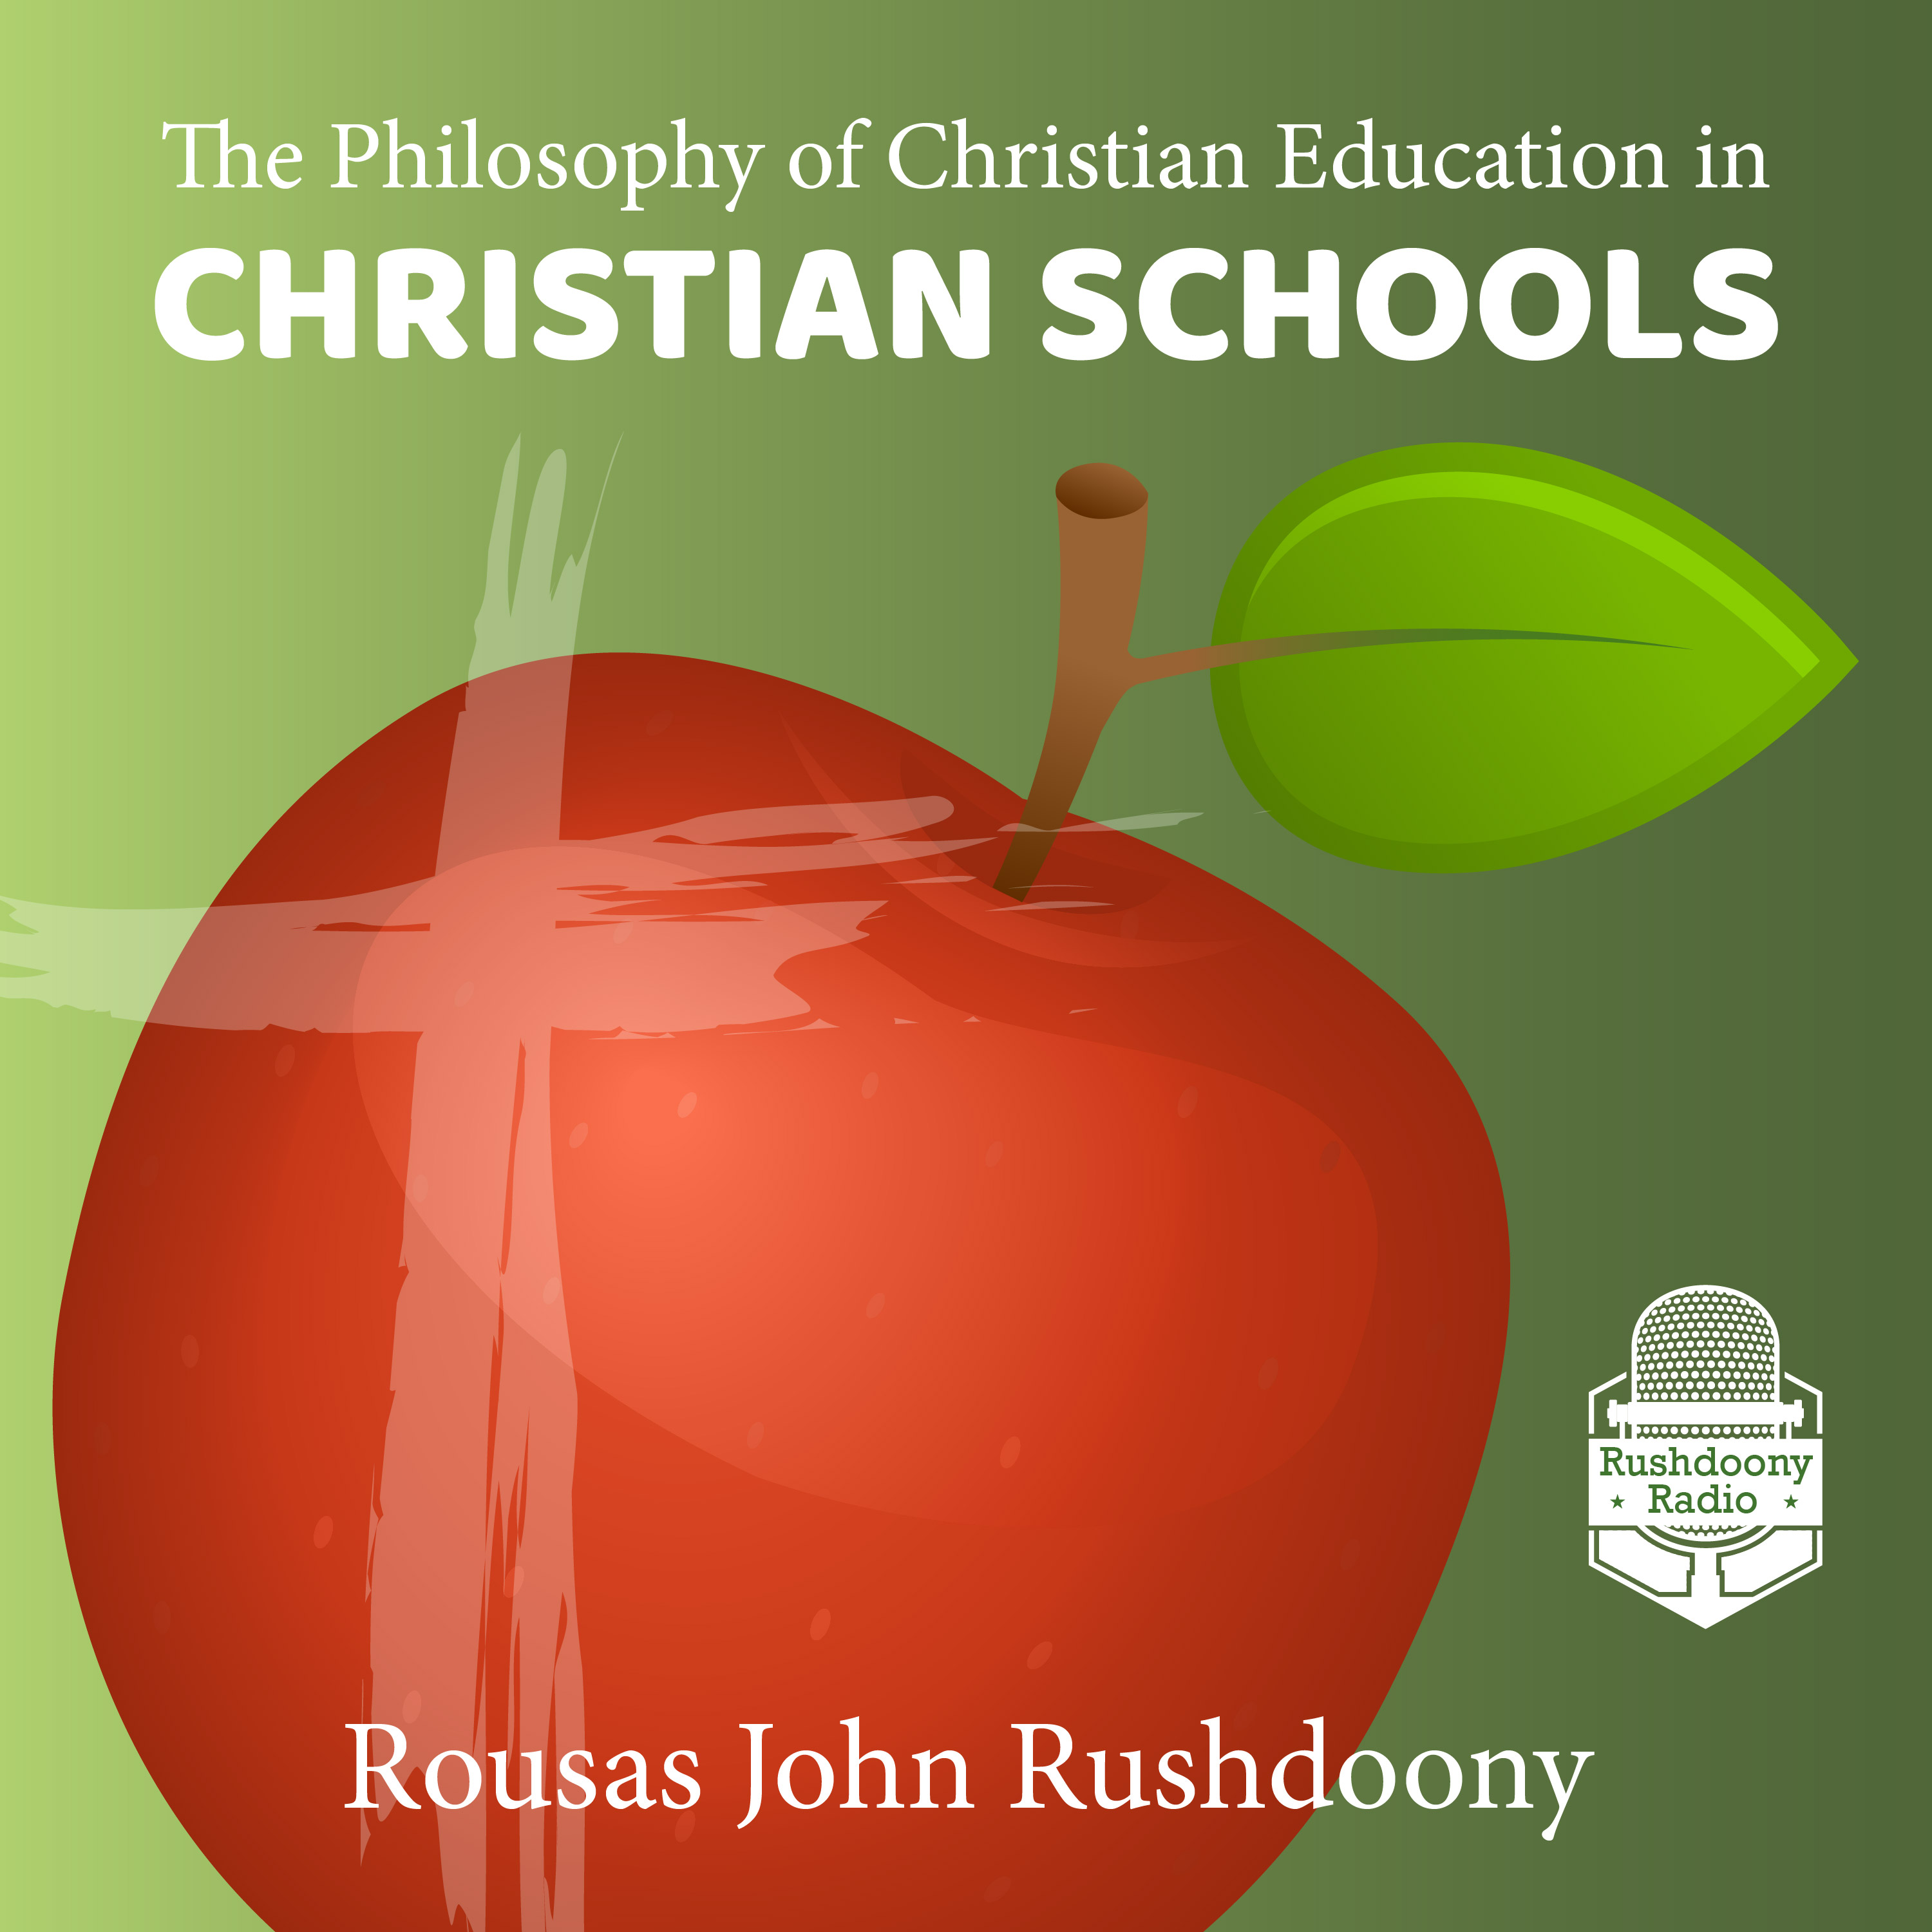 The Philosophy of Christian Education in Christian Schools